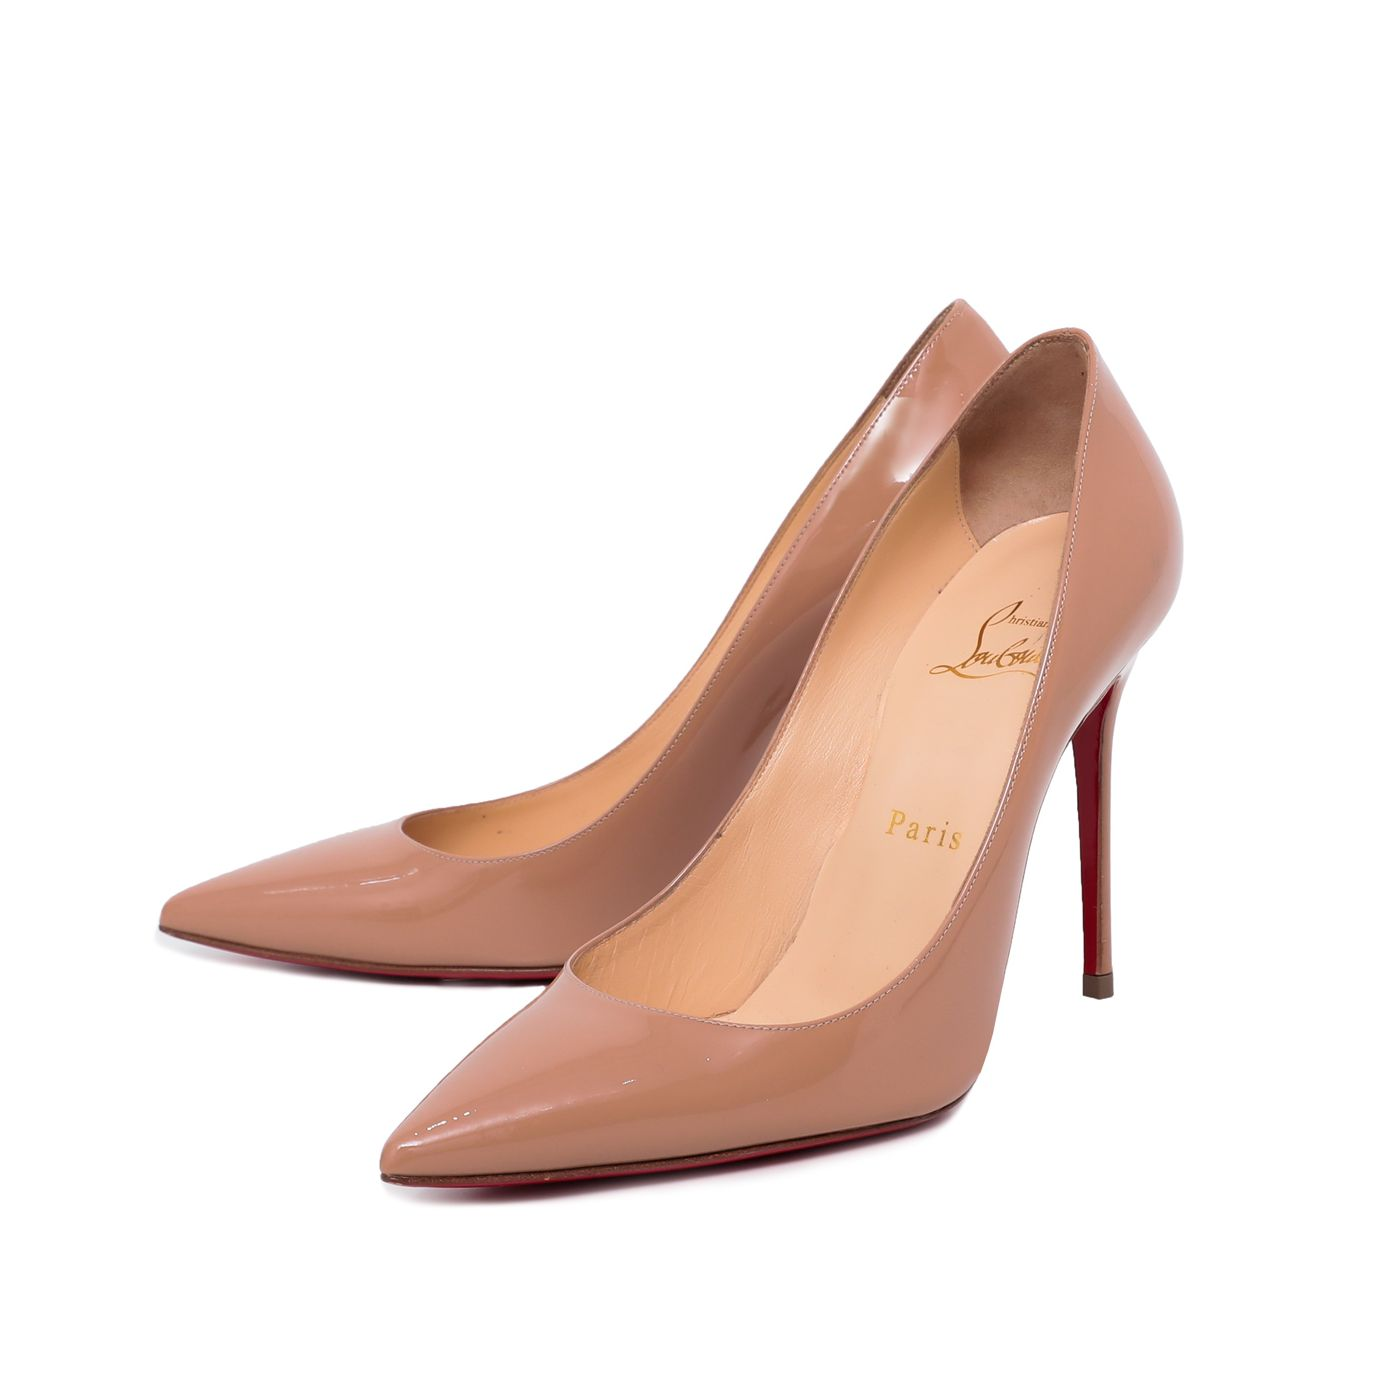 Christian Louboutin Nude Late 100m Pumps 37.5